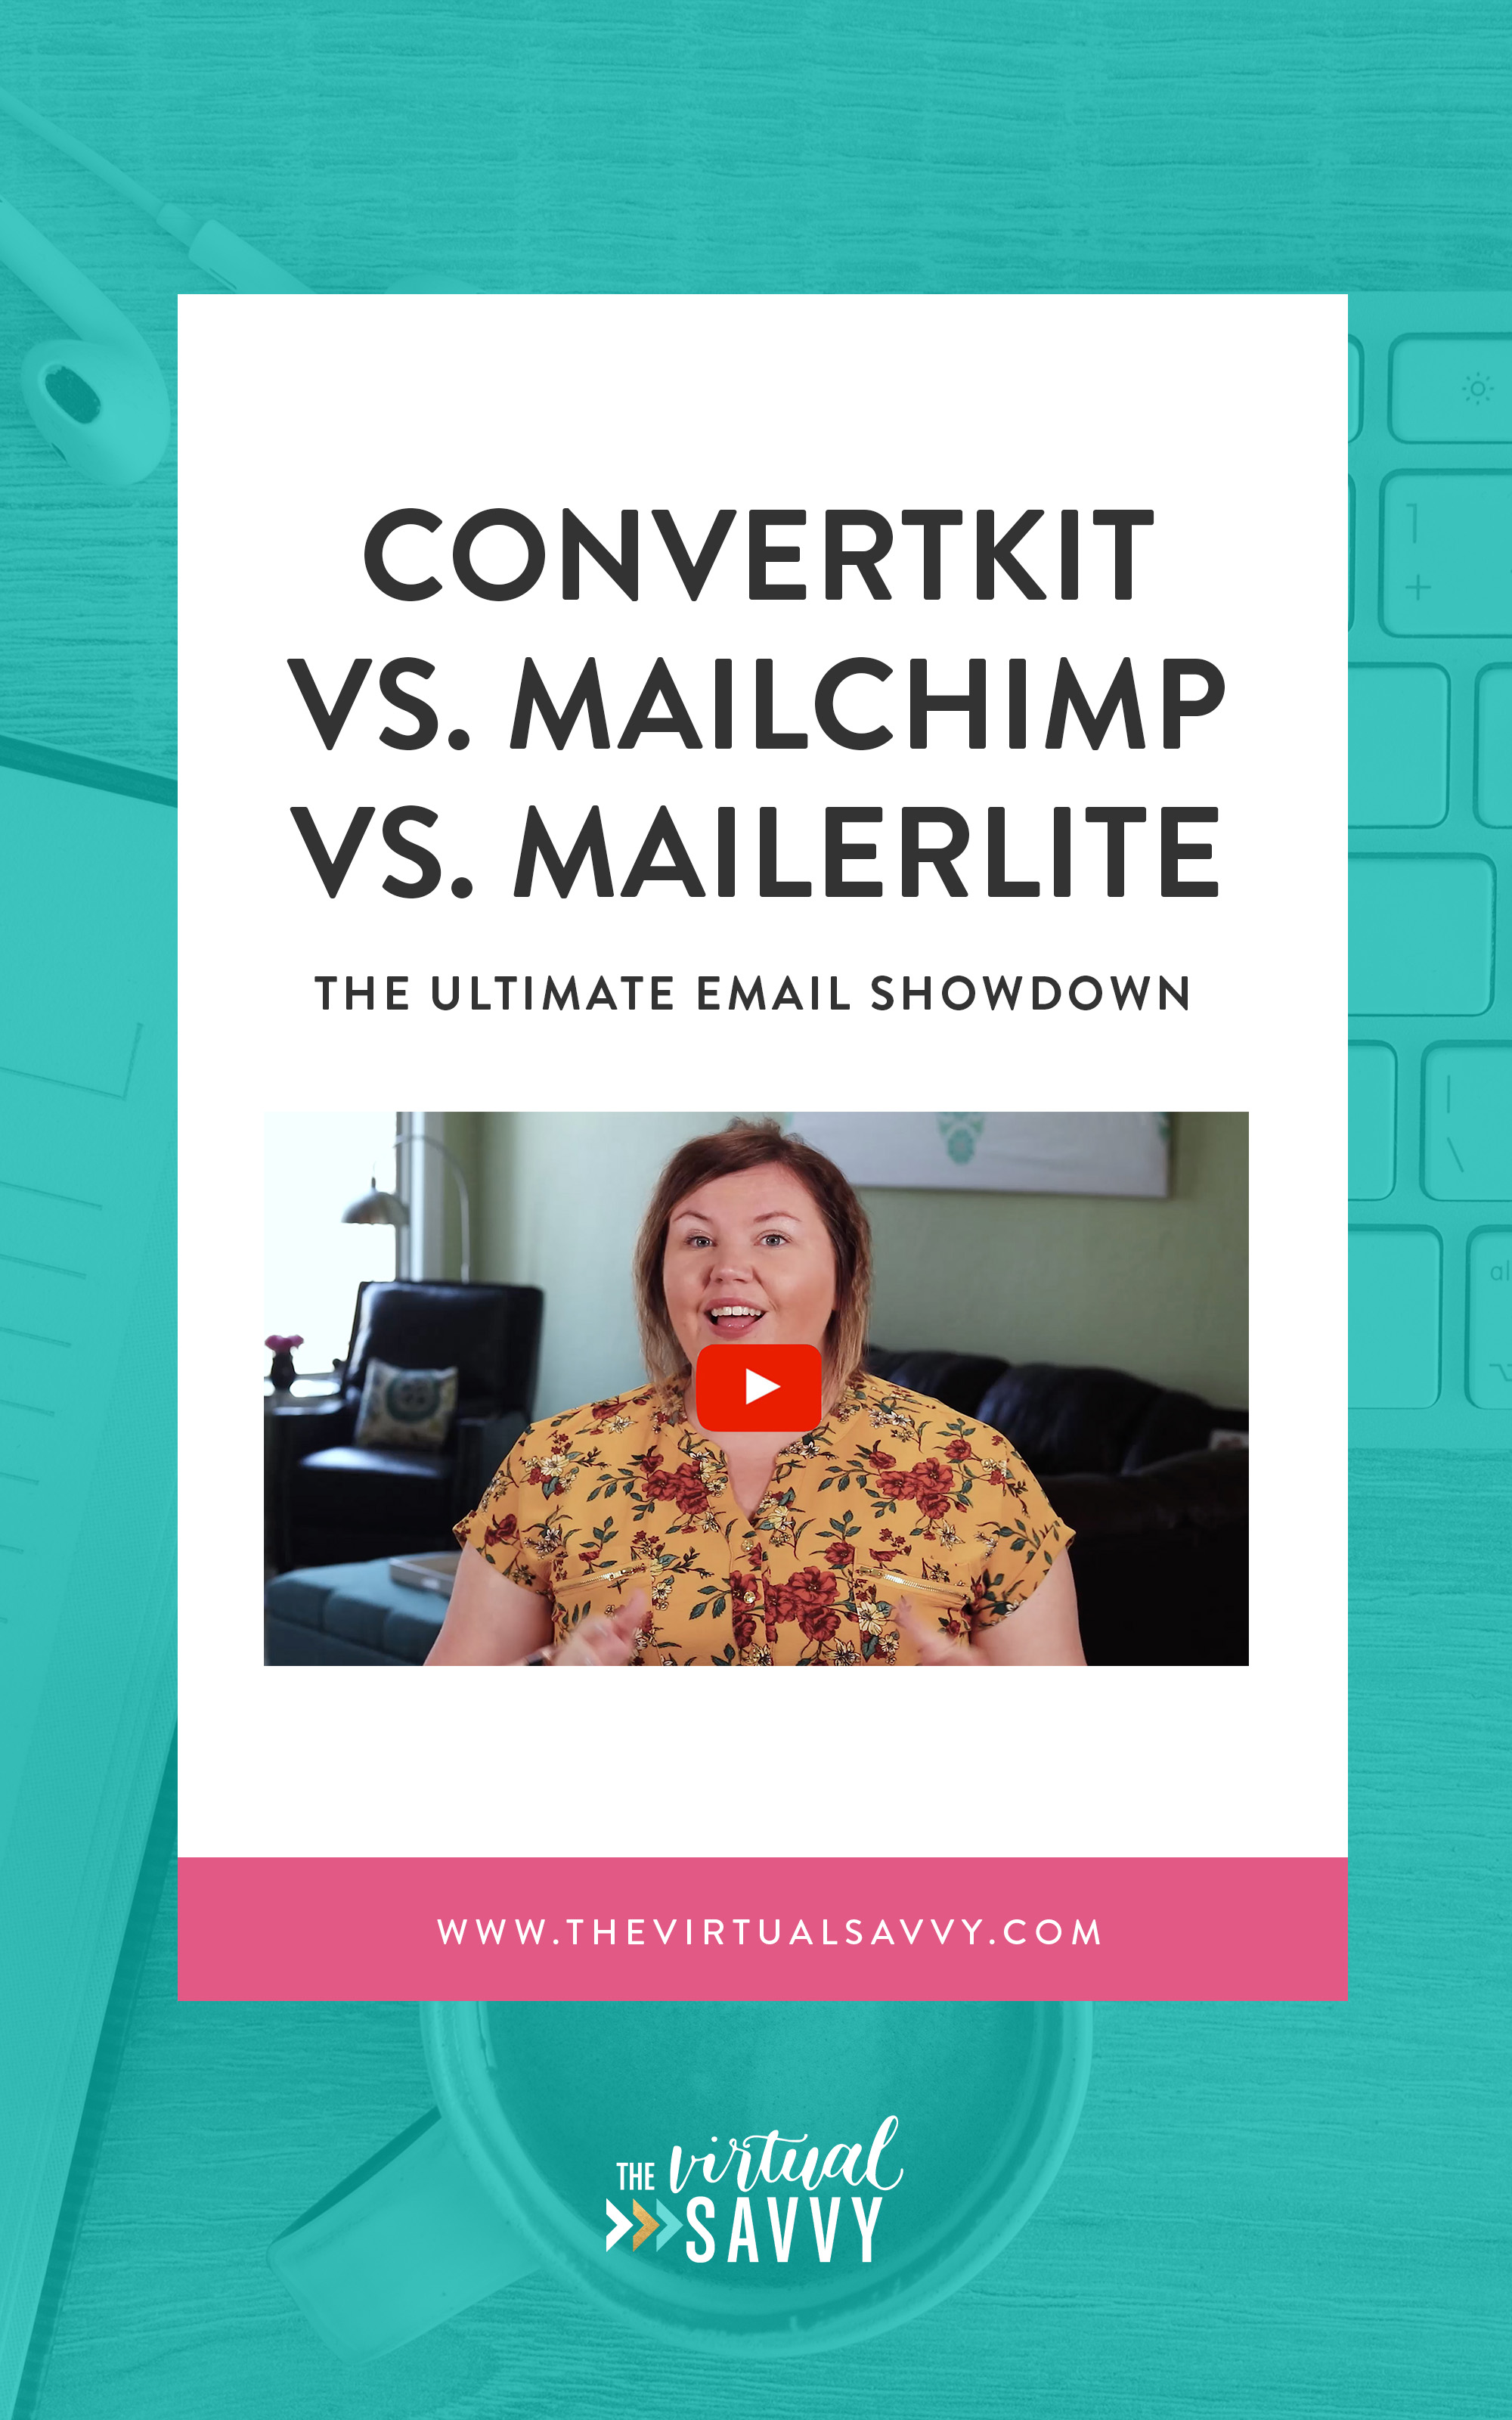 The Facts About Convertkit Vs Mailchimp Revealed